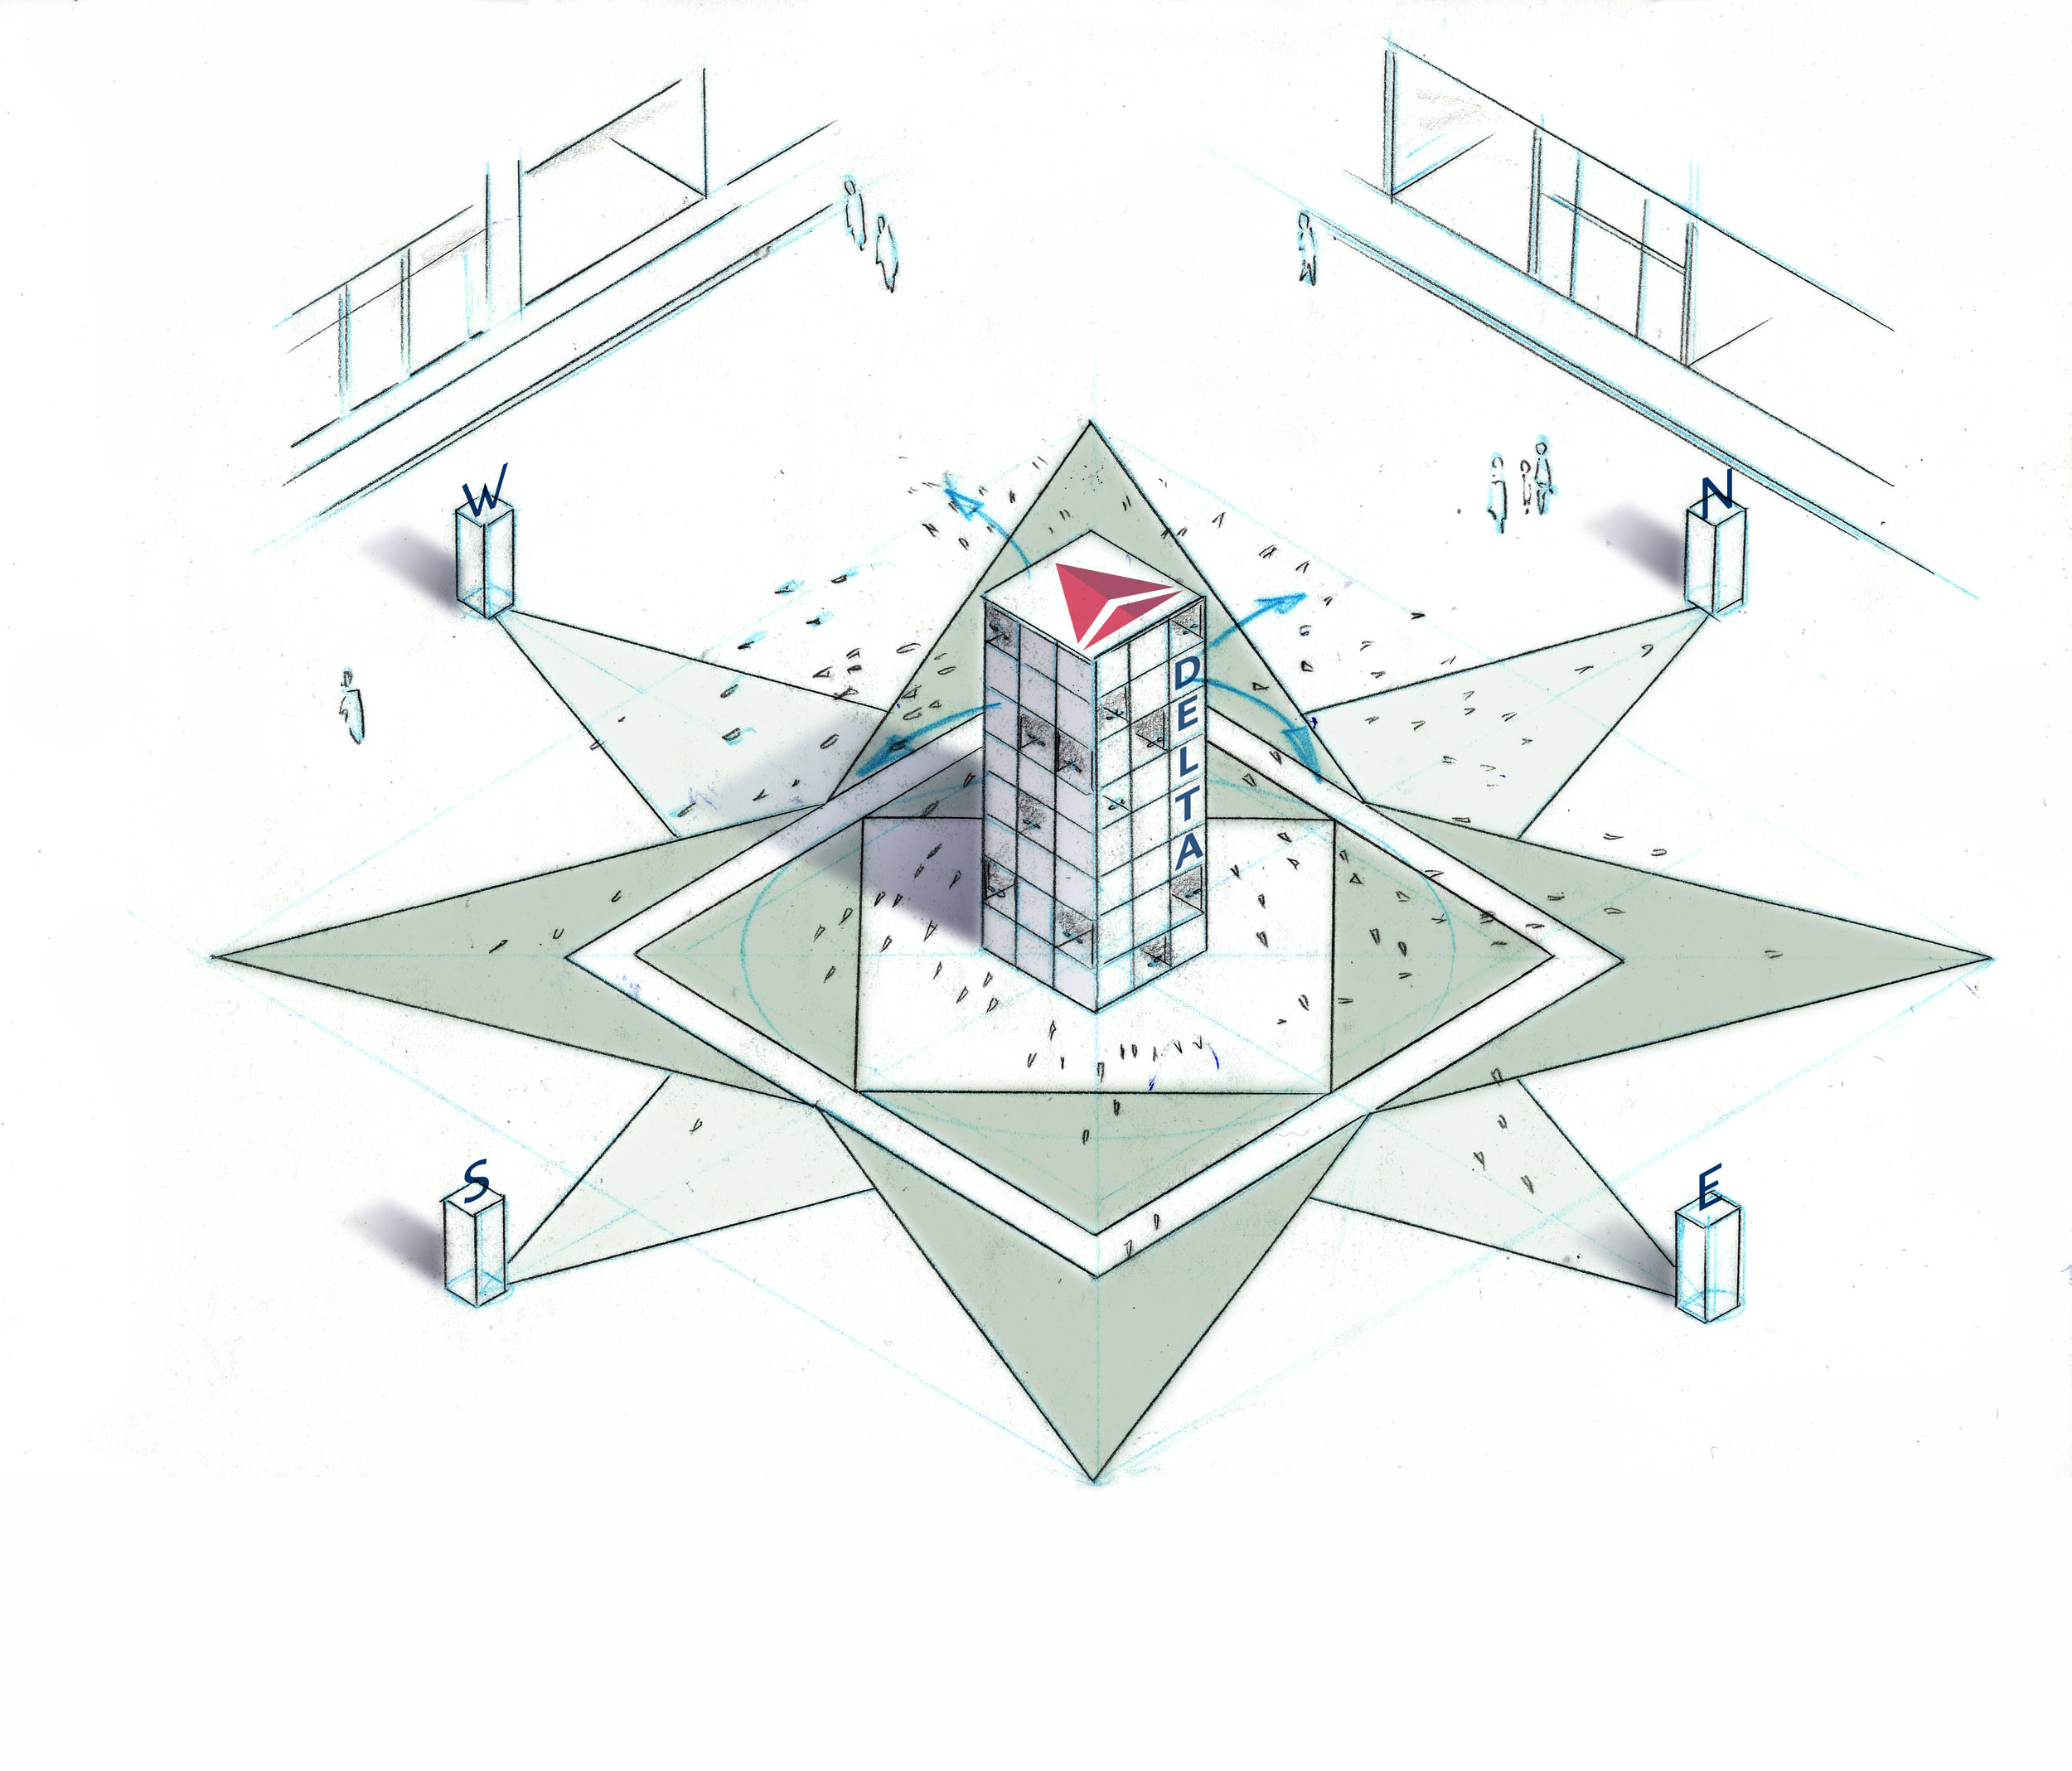 Isometric  showing design, scale, and context.